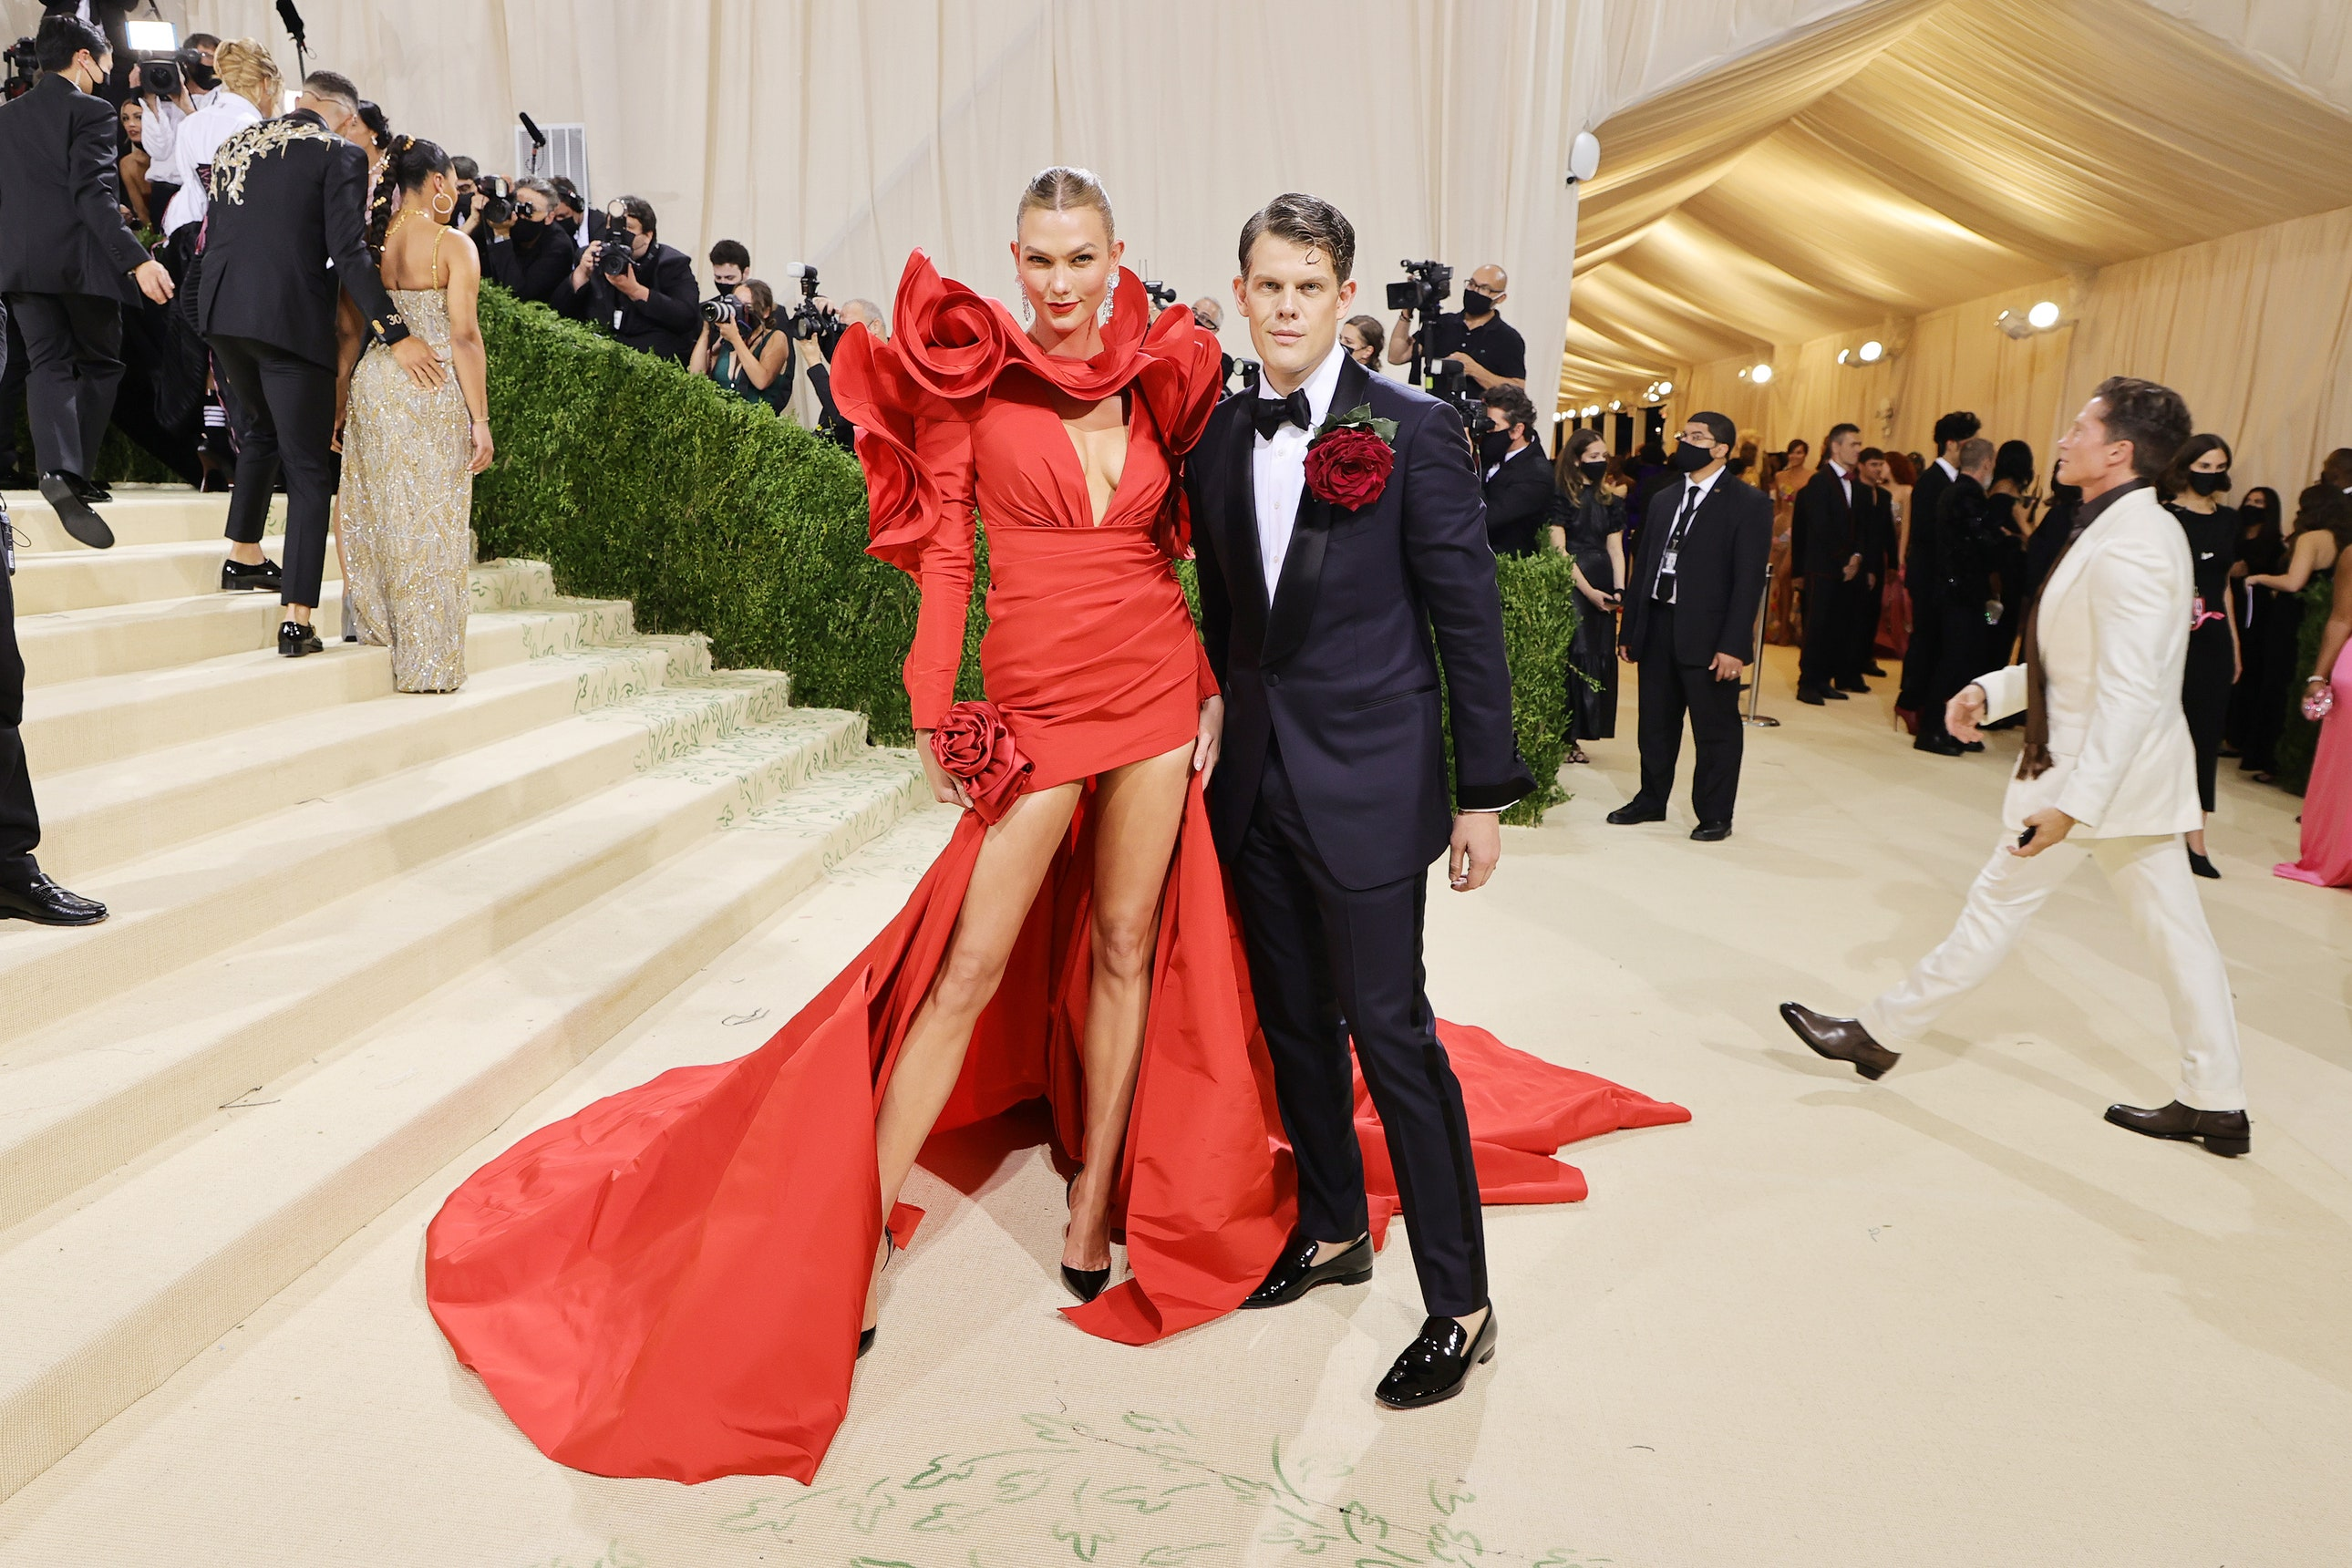 The Met Gala 2021: The Best Fashion and Beauty Looks on the Red Carpet